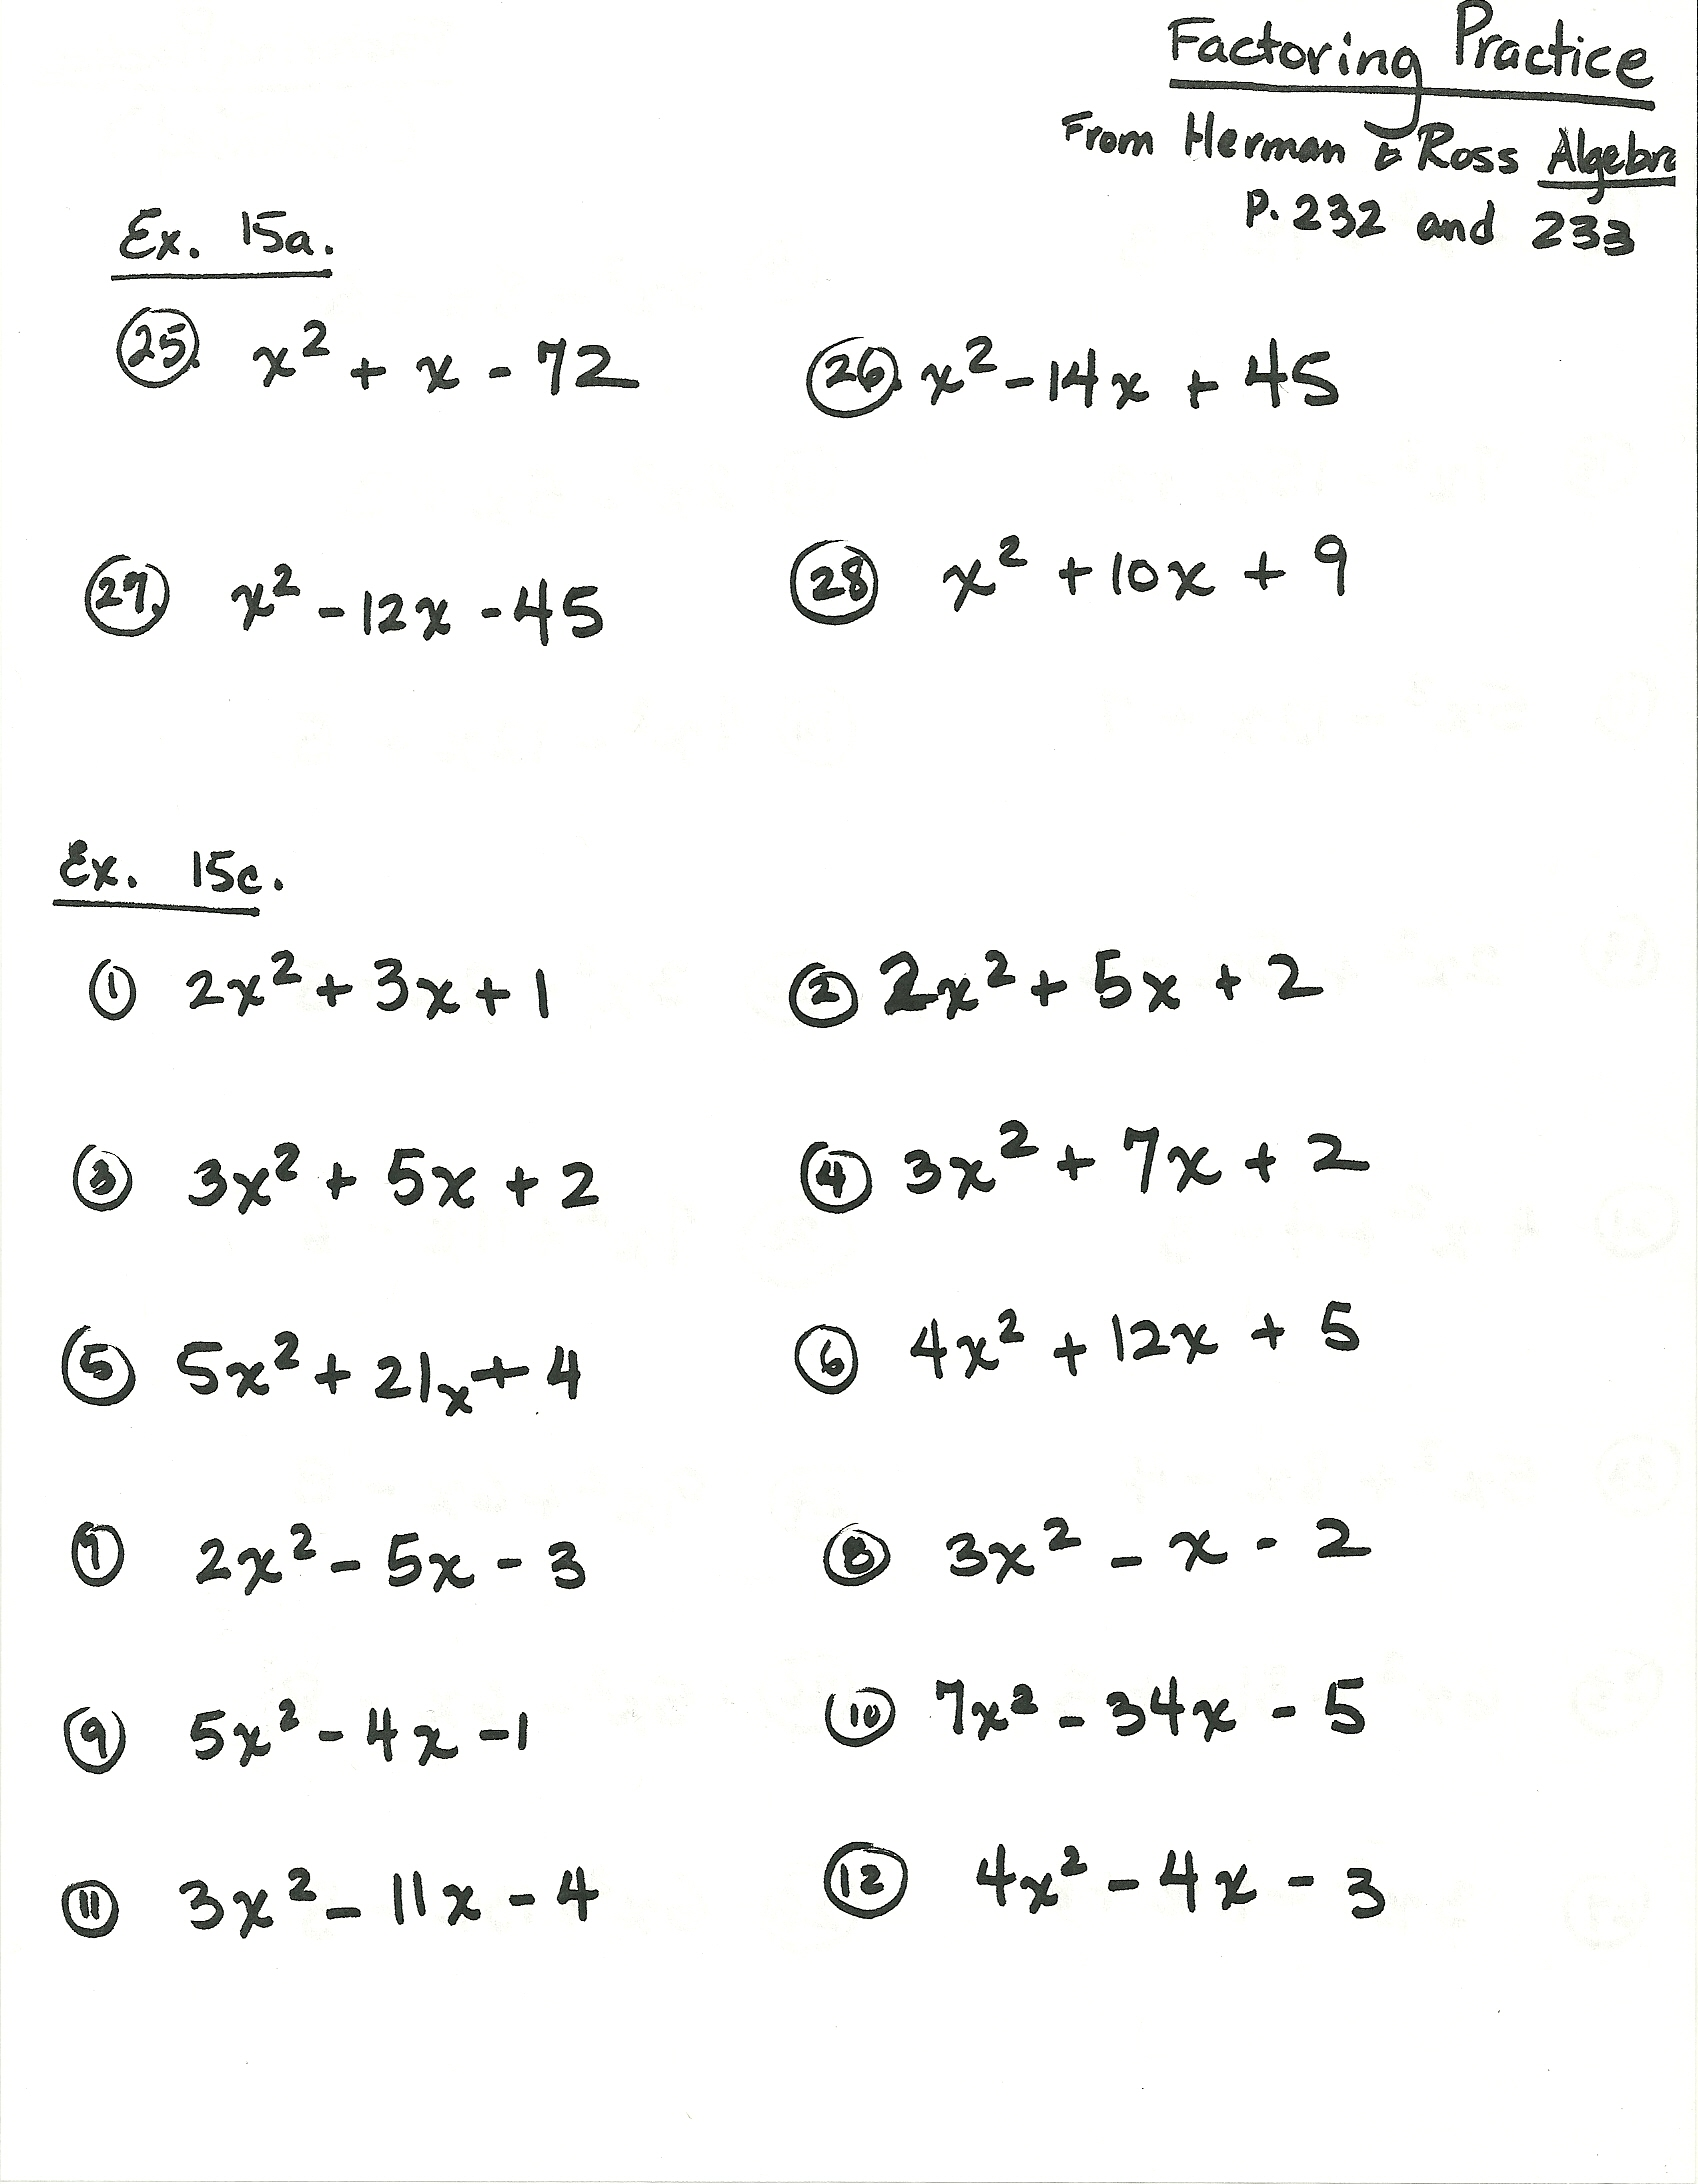 Worksheet 8th Grade Algebra 1 Worksheets homework tests 2013 14 mrs ribeiros math classes algebra by herman ross 1 27 odds